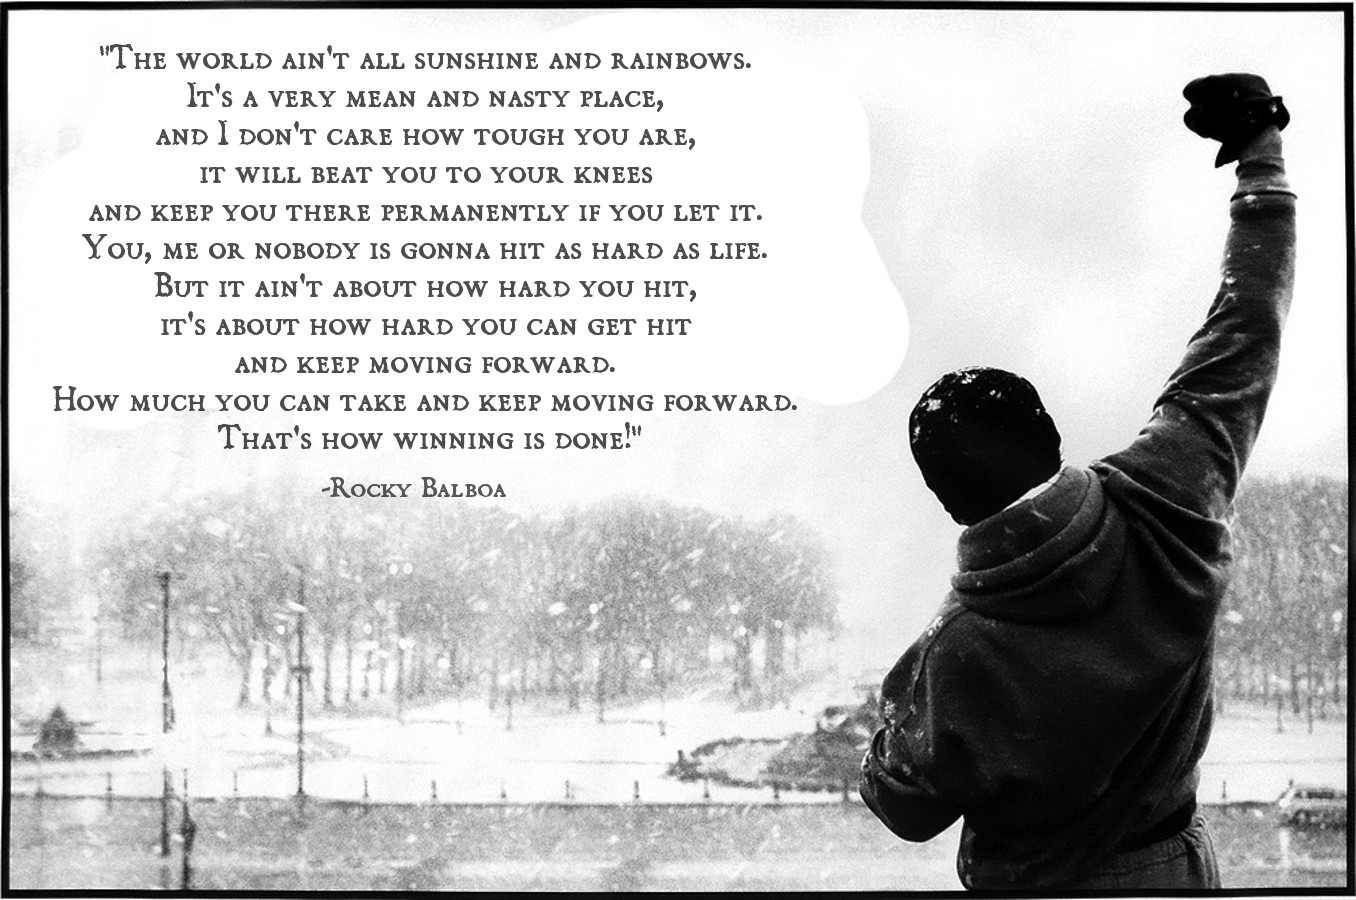 The World Ain't All Sunshine and Rainbows - Rocky Balboa